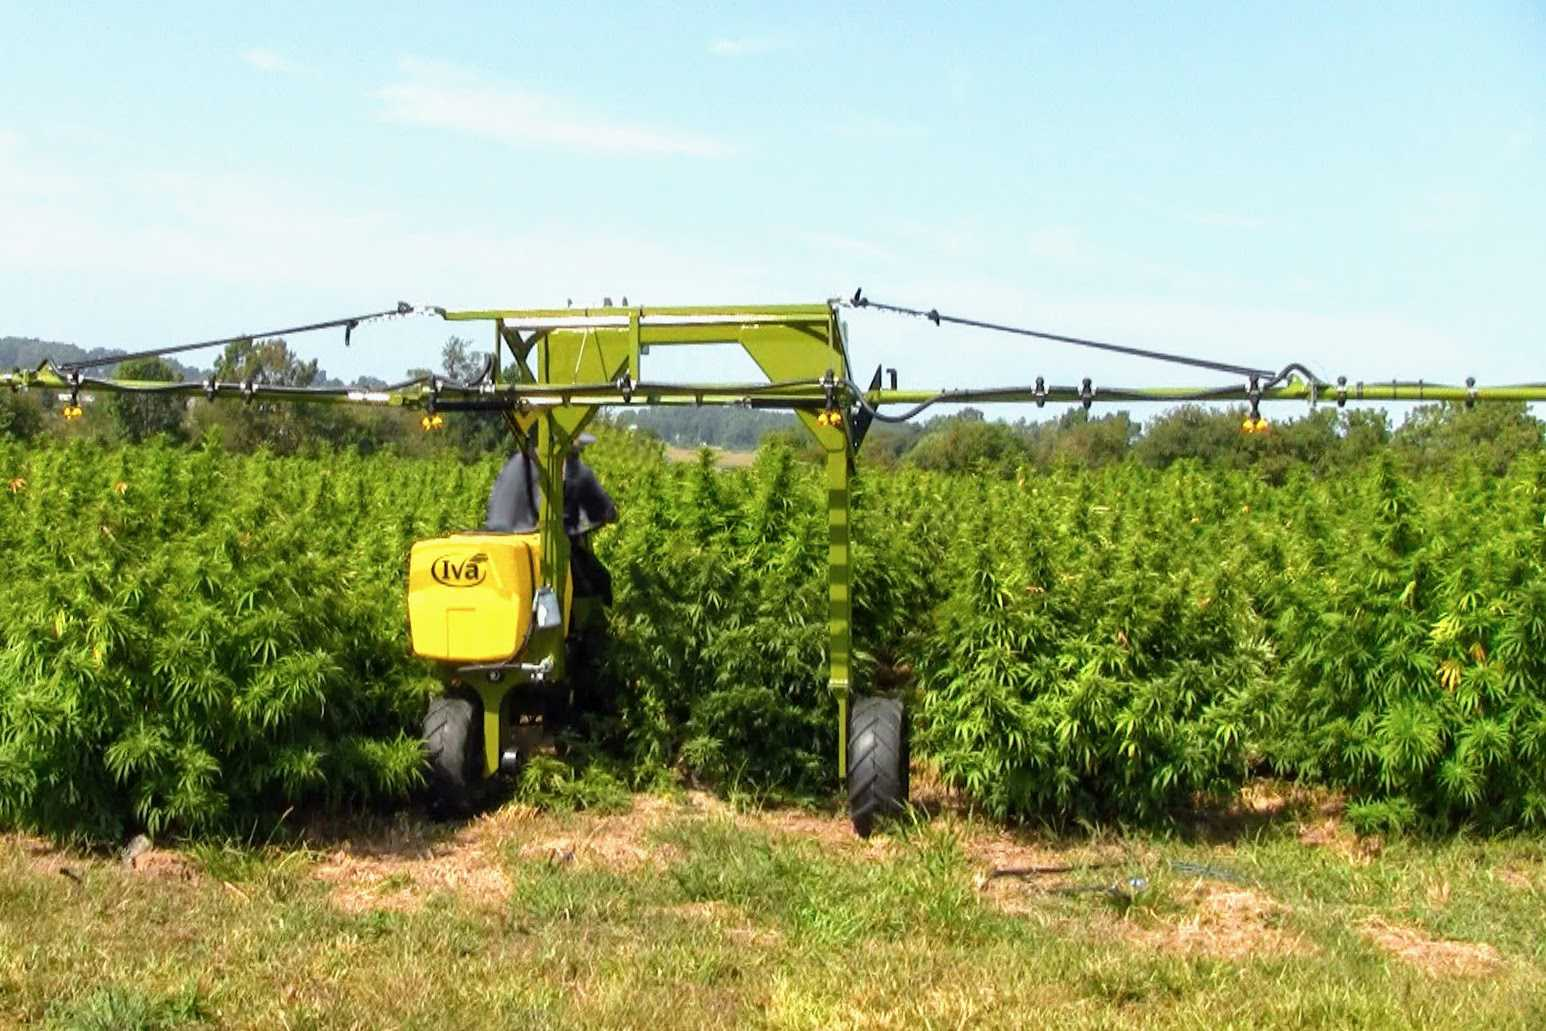 spraying hemp with SP50 Self-propelled sprayer from Iva Mfg